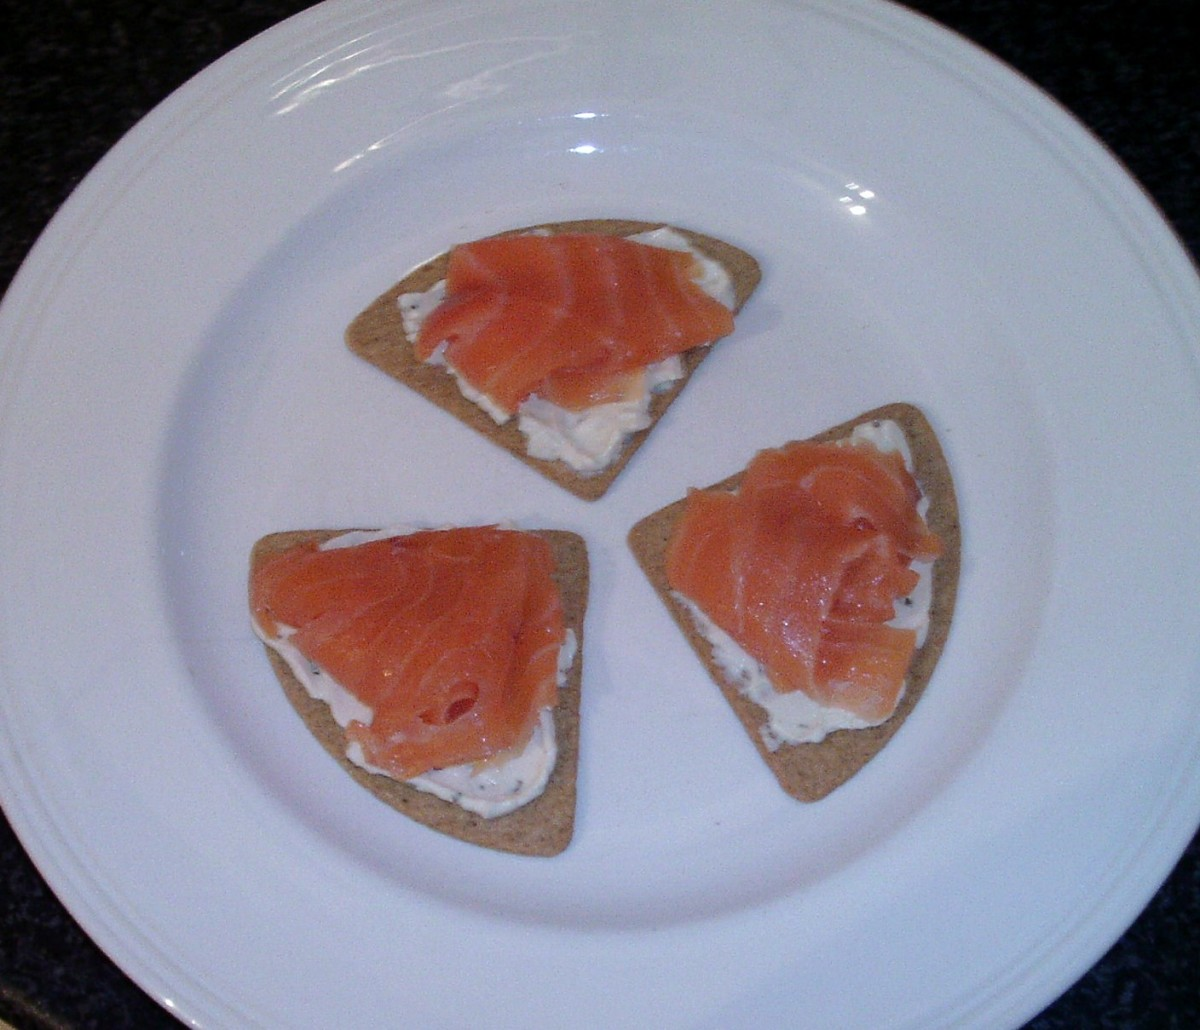 Smoked salmon is laid on oatcakes